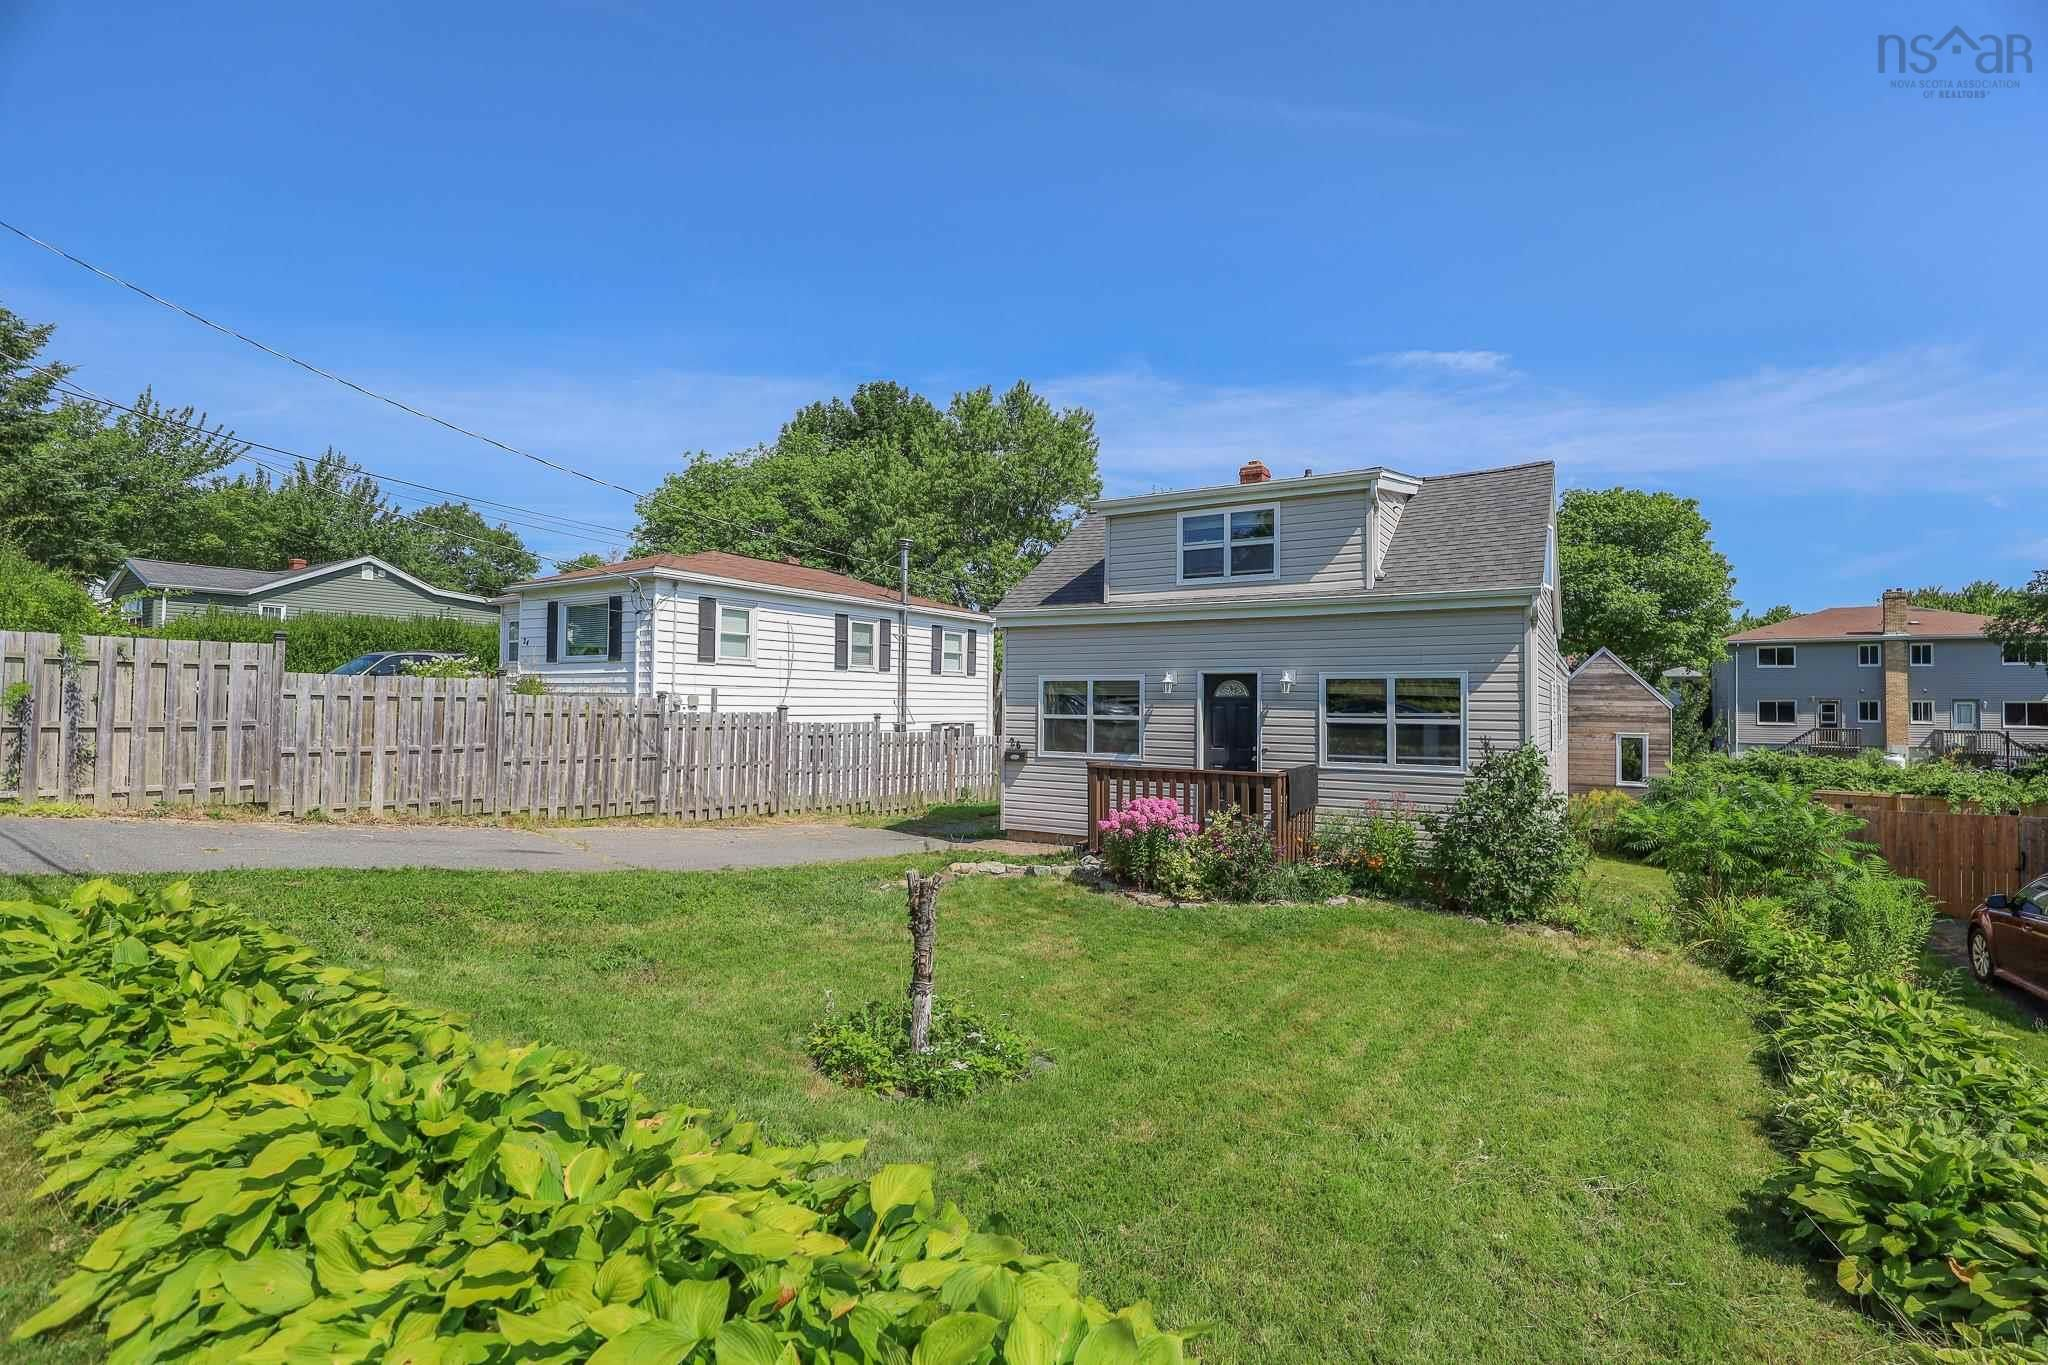 Main Photo: 26 Pine Grove Drive in Spryfield: 7-Spryfield Residential for sale (Halifax-Dartmouth)  : MLS®# 202125847